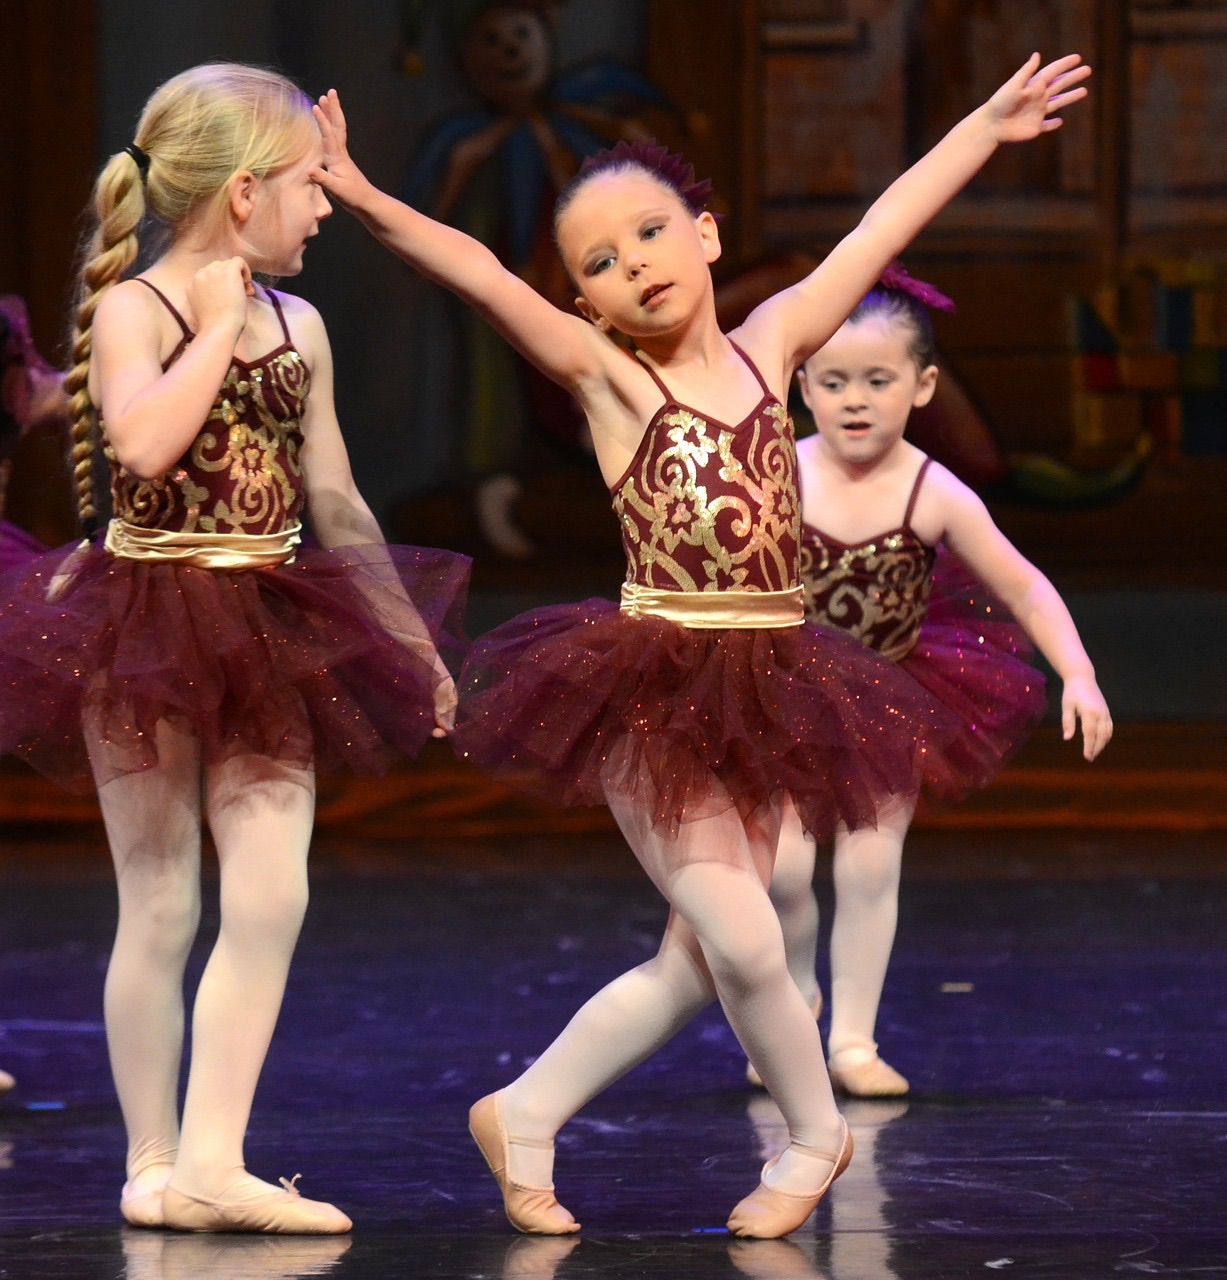 Three Ballerins